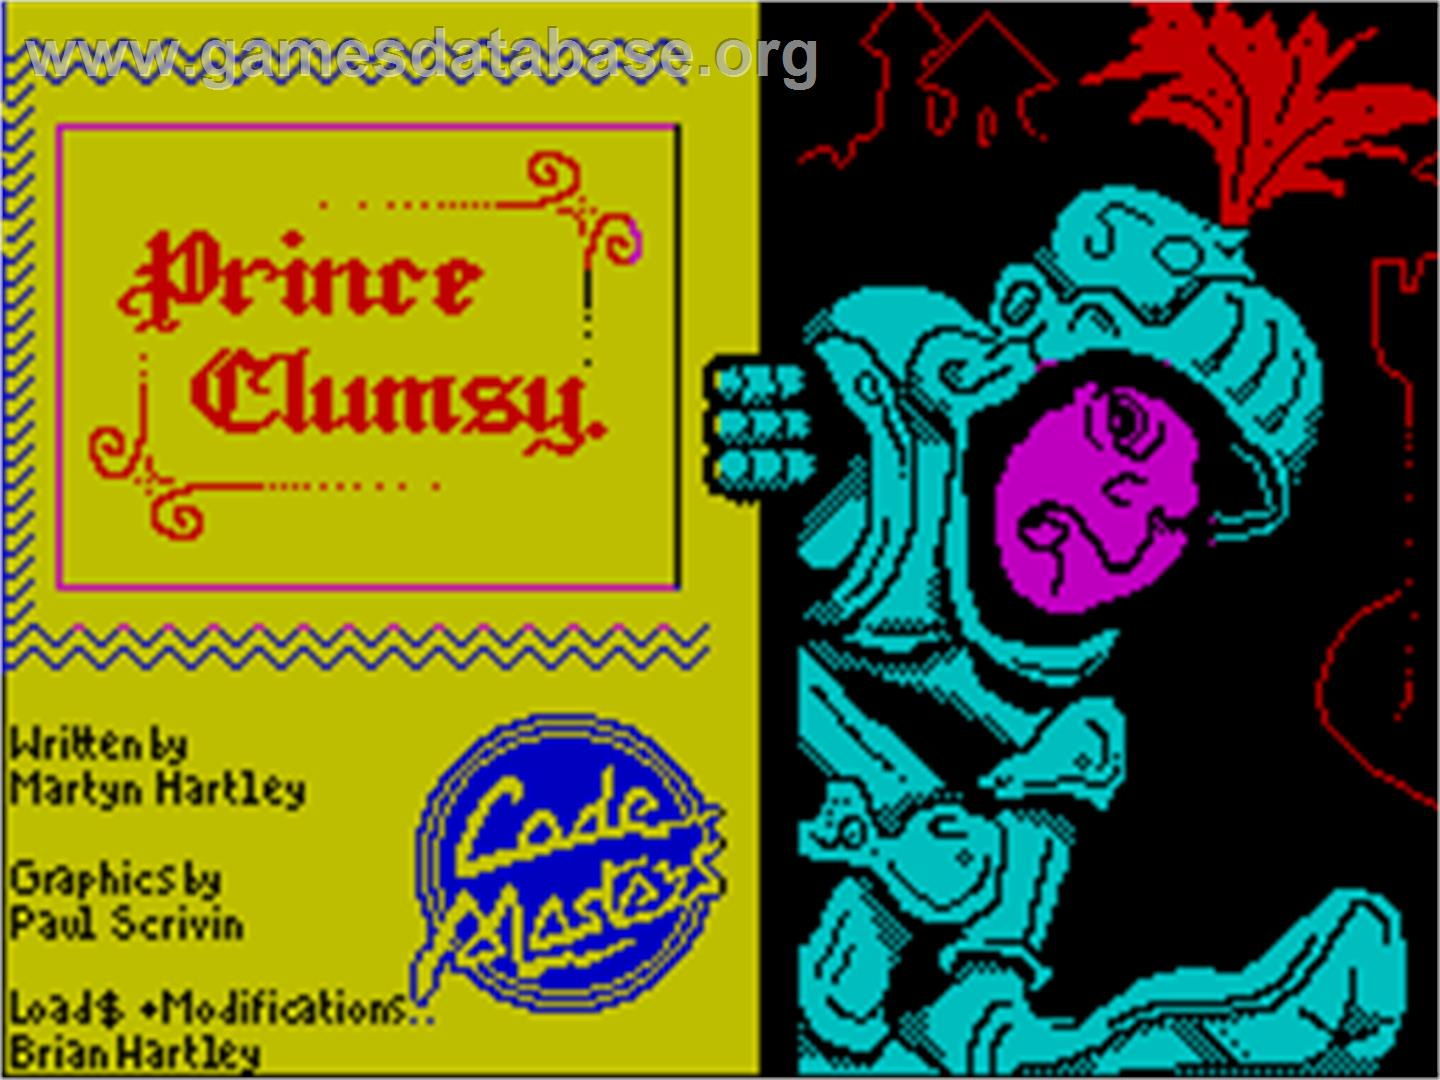 Prince Clumsy - Sinclair ZX Spectrum - Artwork - Title Screen